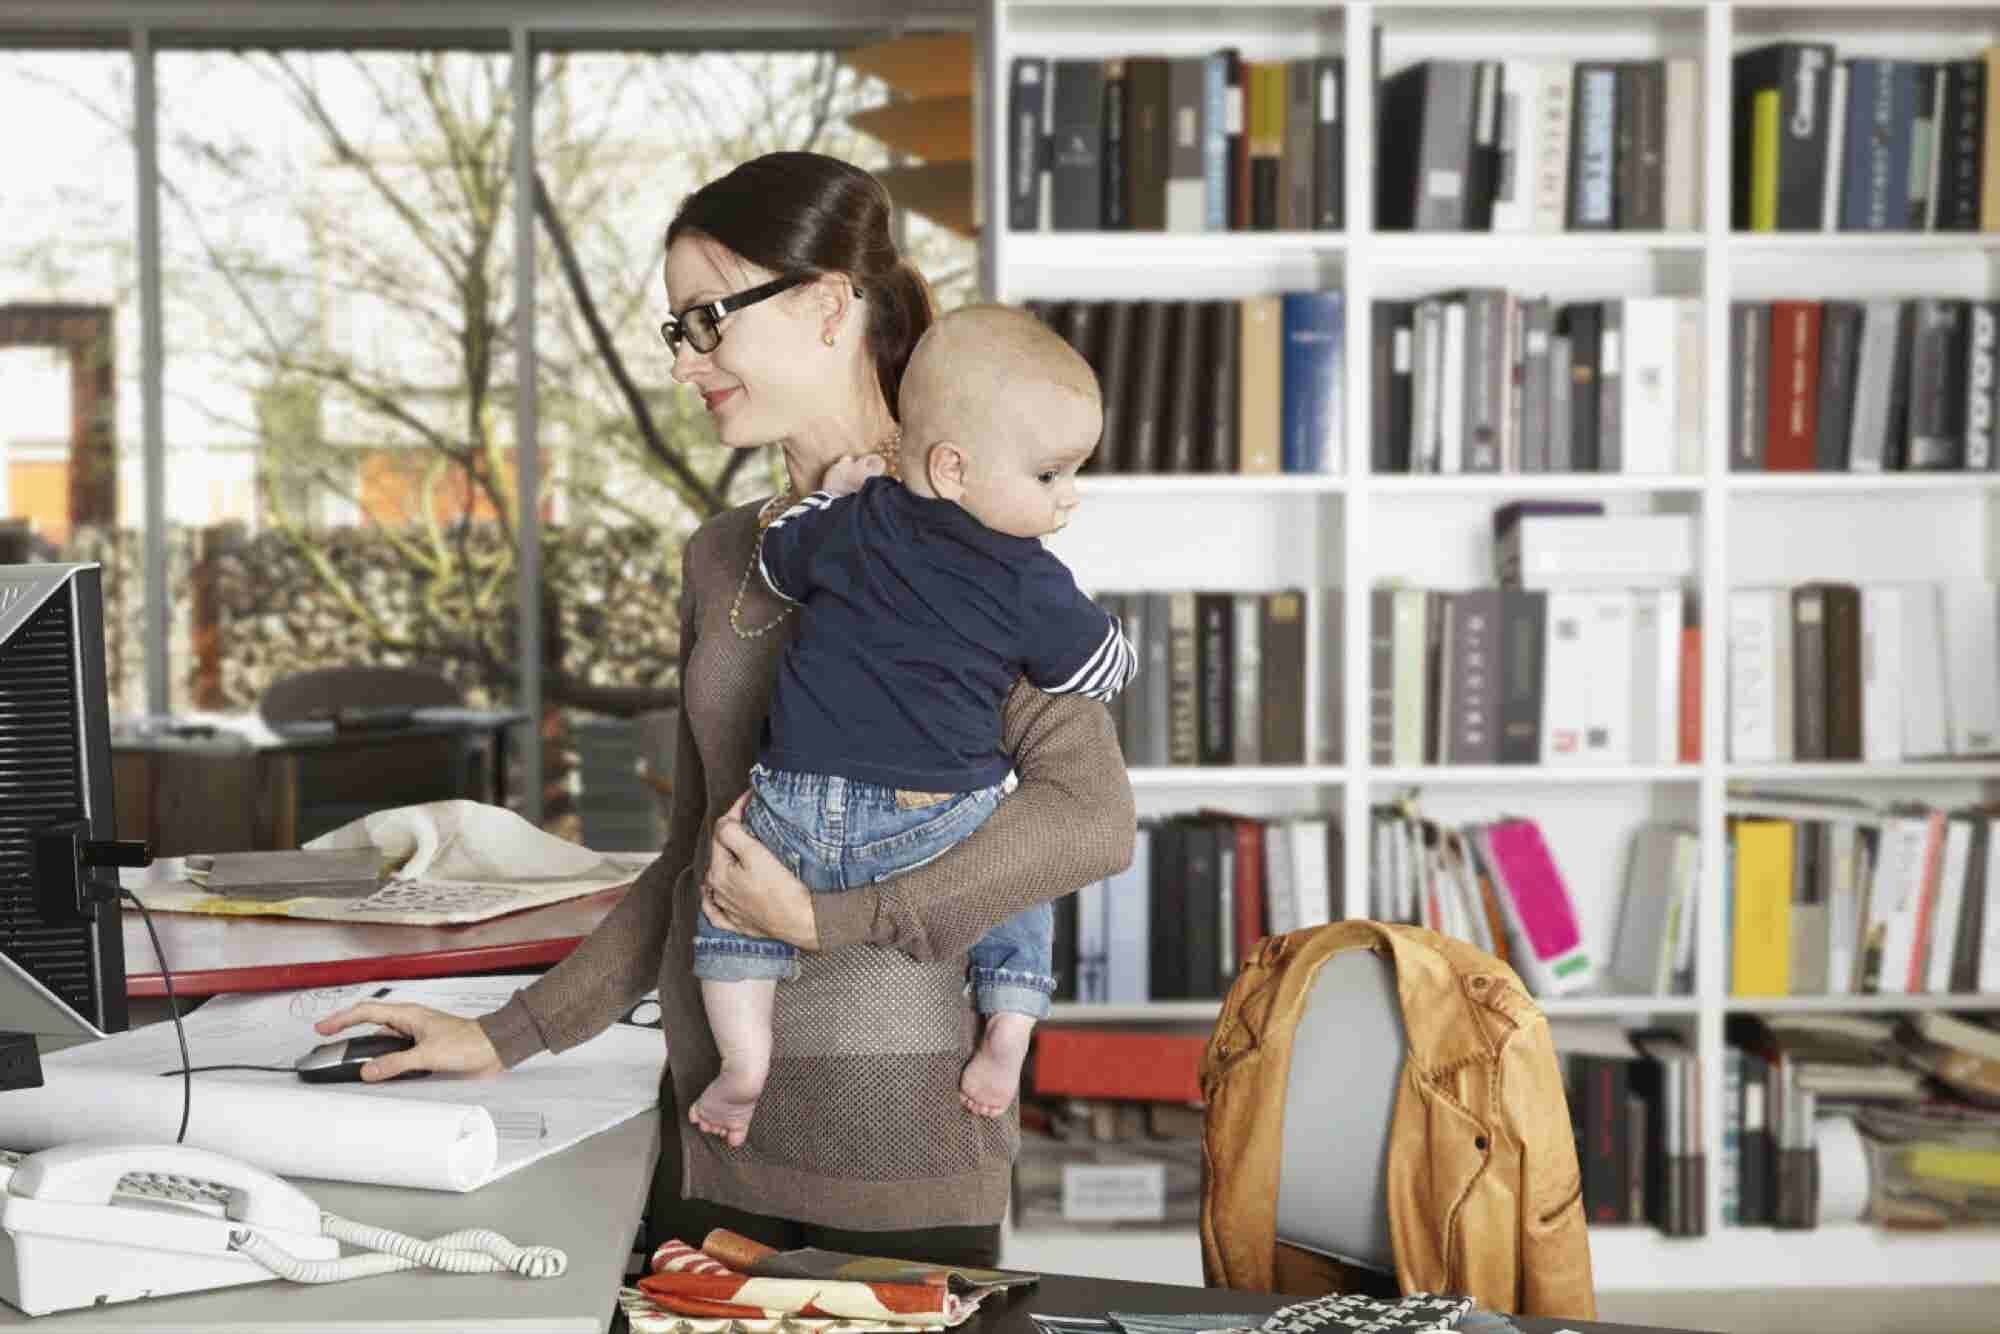 2017's Best and Worst States for Working Moms